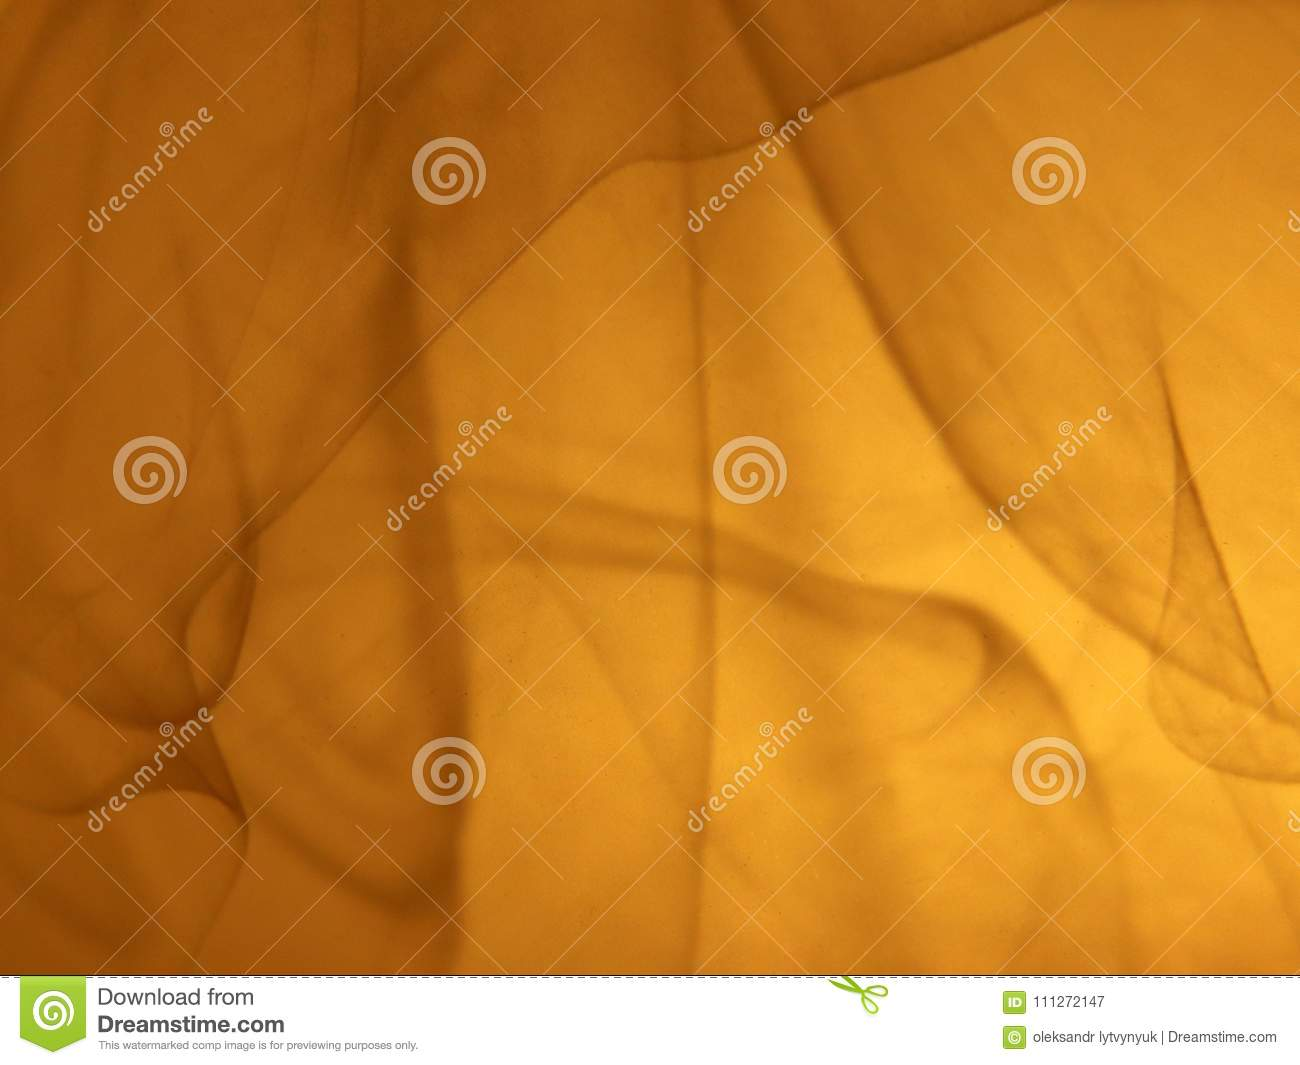 Smoky texture. Blurred outlines. Gas diffusion. Cloudy waves. Warm honey tones. Orange coloring.